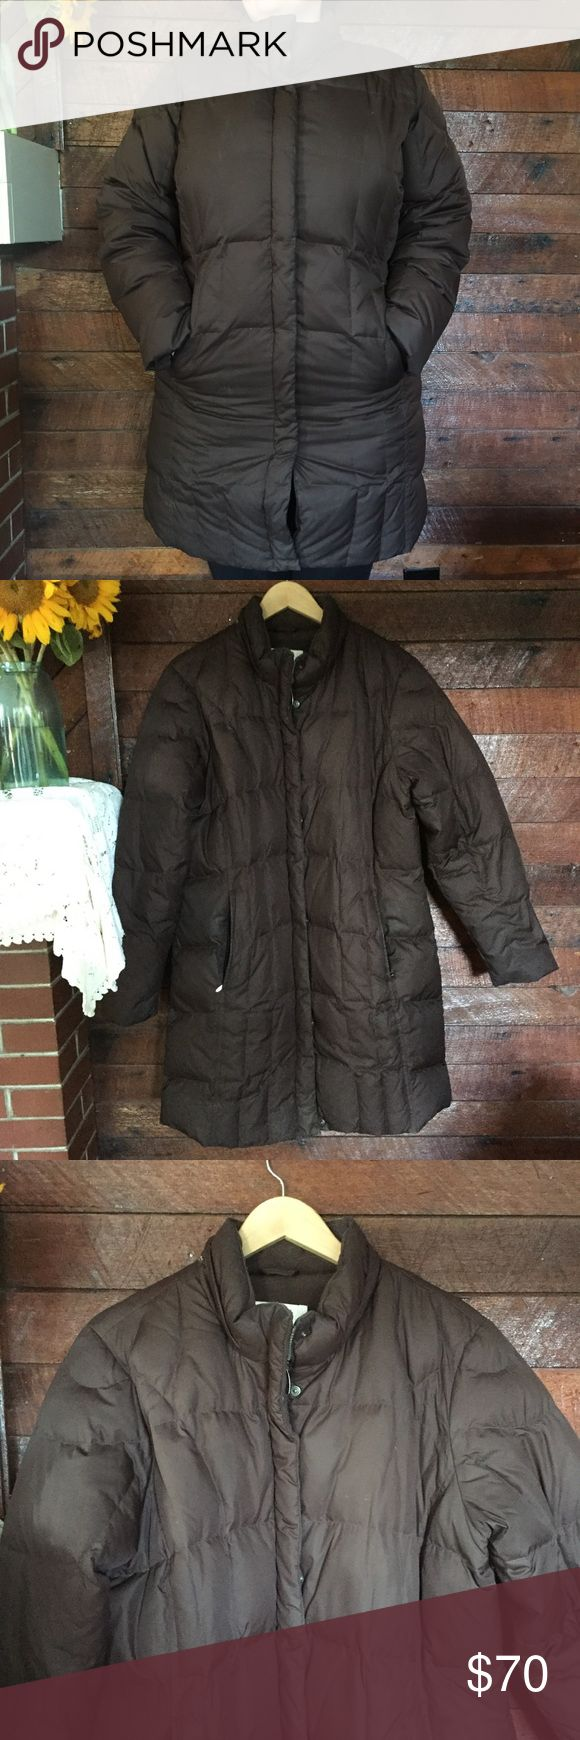 Eddie Bauer 700 Fill Goose Down Parka Knee length coat. SUPER WARM! amazing winter coat to keep you toasty. Don't hesitate to ask a question or make a bundle. Eddie Bauer Jackets & Coats